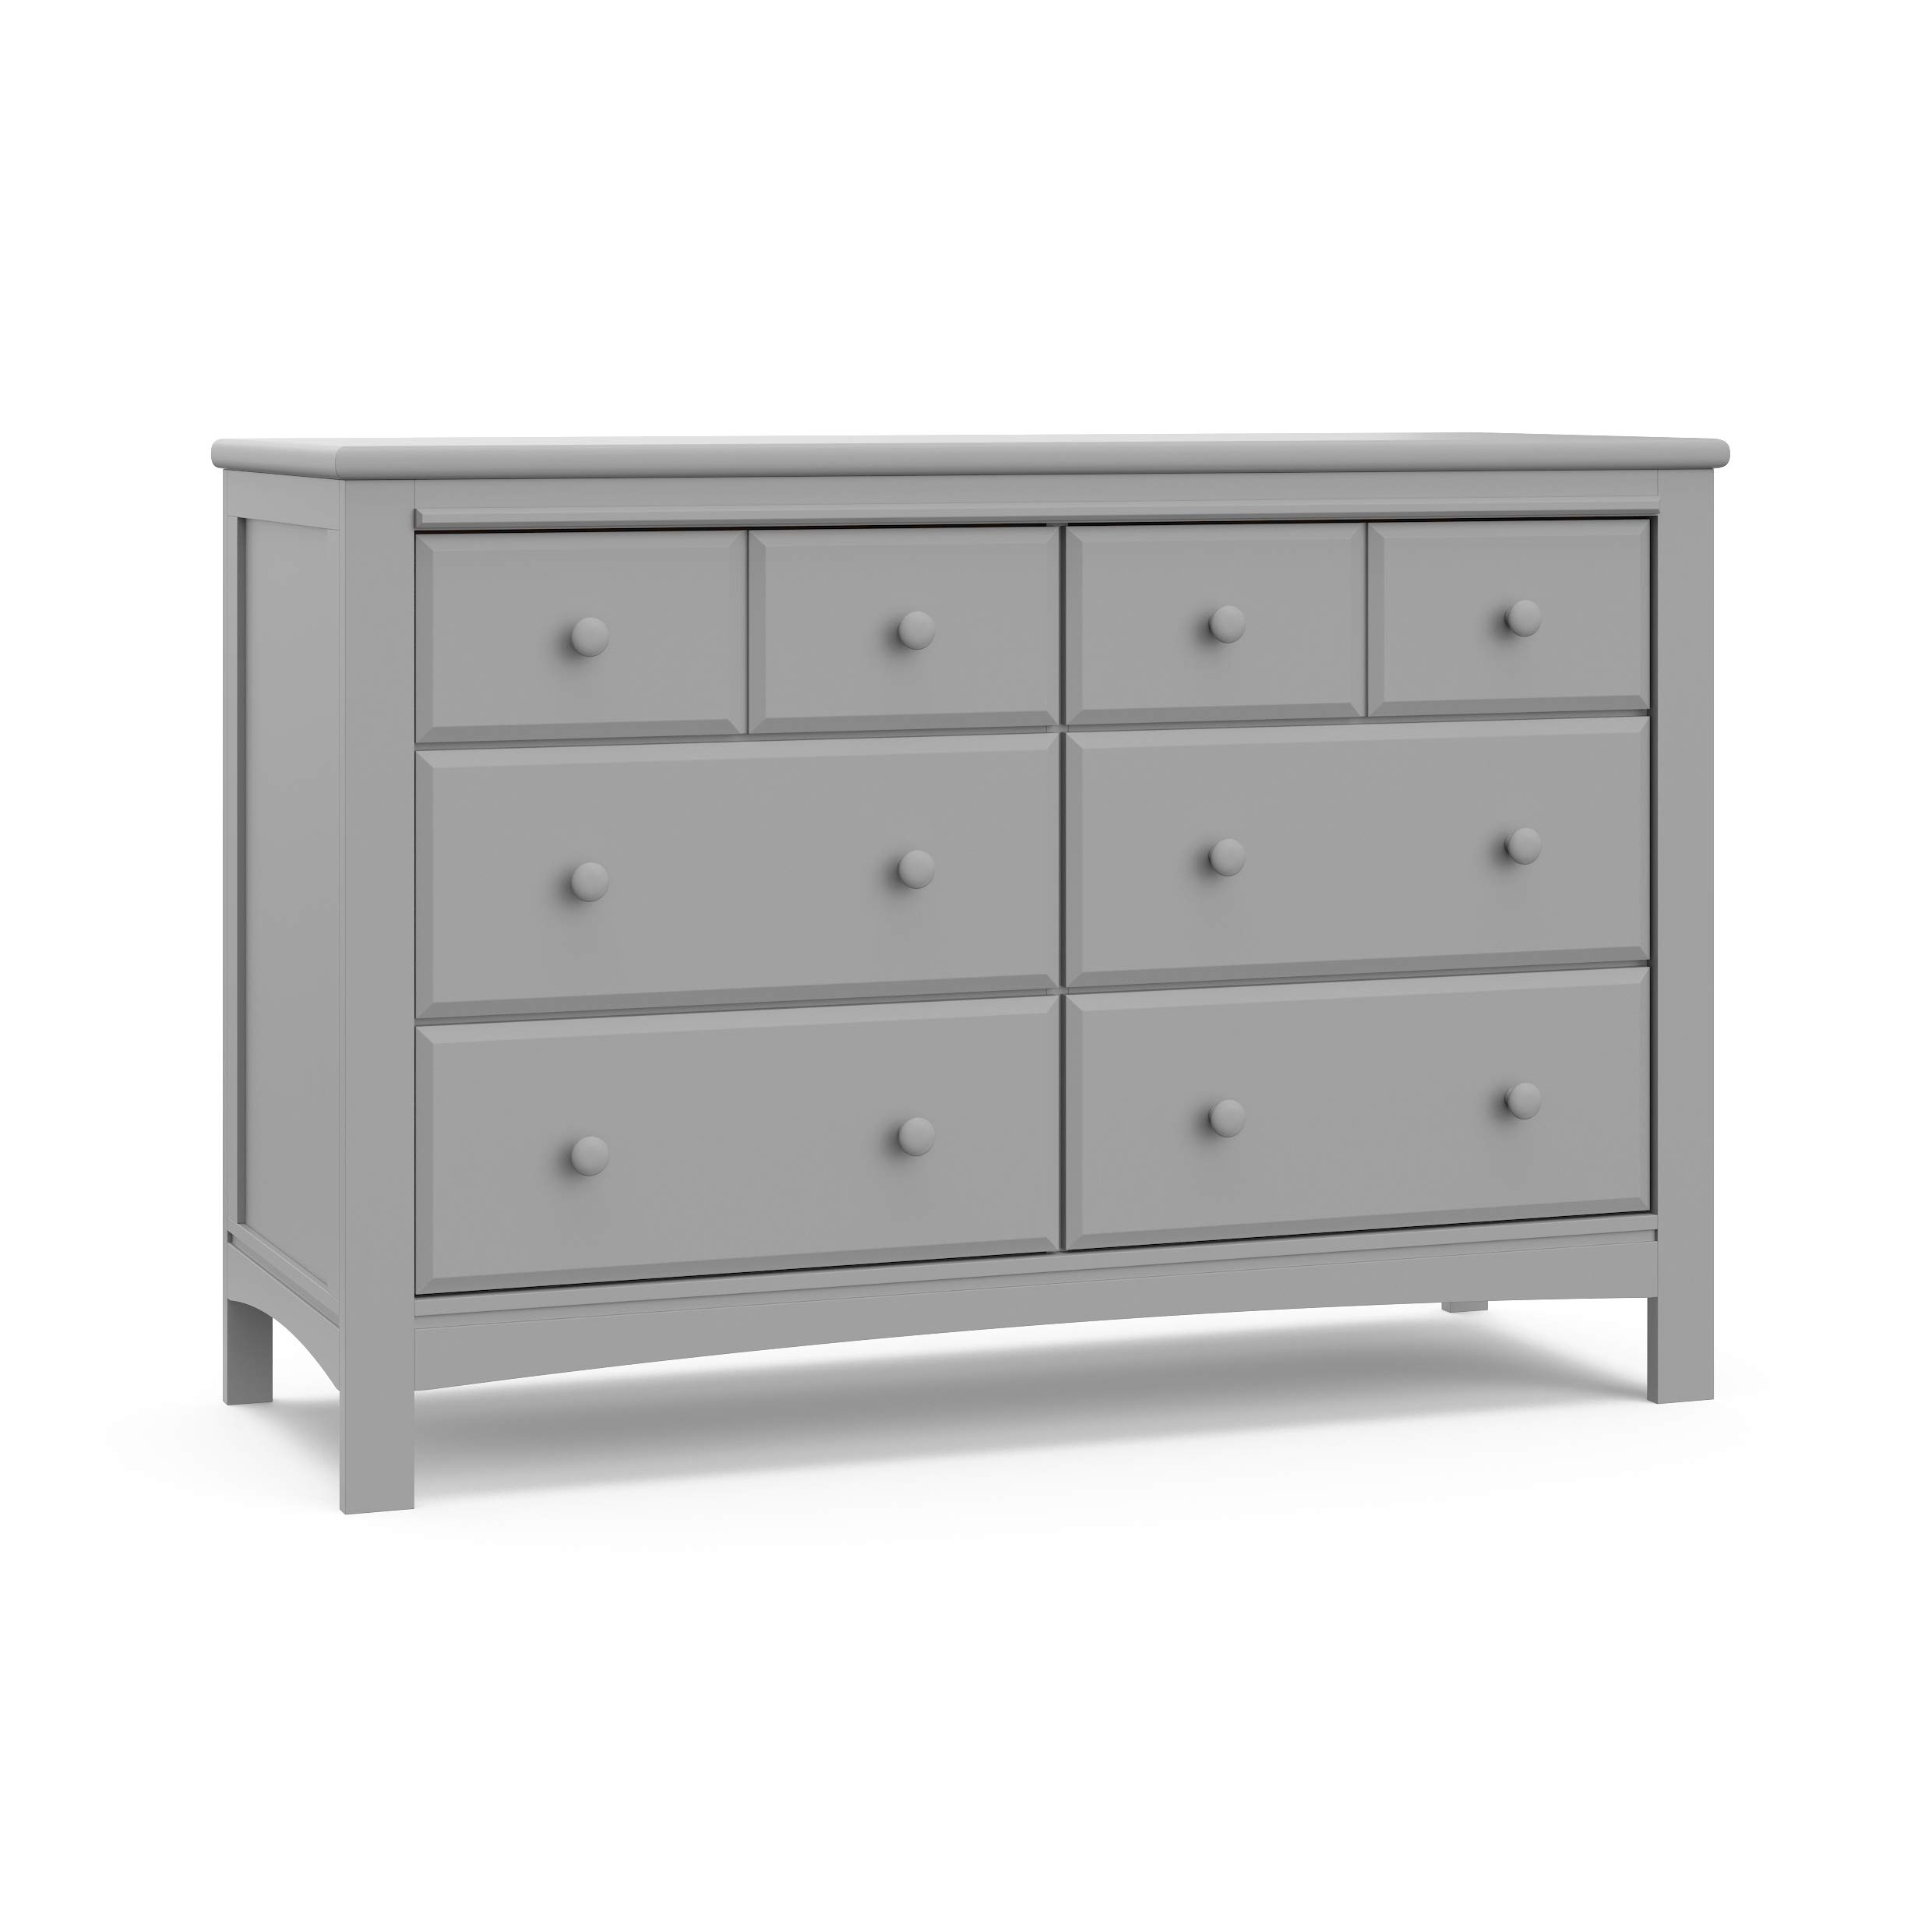 Graco Benton 6 Drawer Dresser (Pebble Gray) - Easy New Assembly Process, Universal Design, Durable Steel Hardware and Euro-Glide Drawers with Safety Stops, Coordinates with Any Nursery by Stork Craft